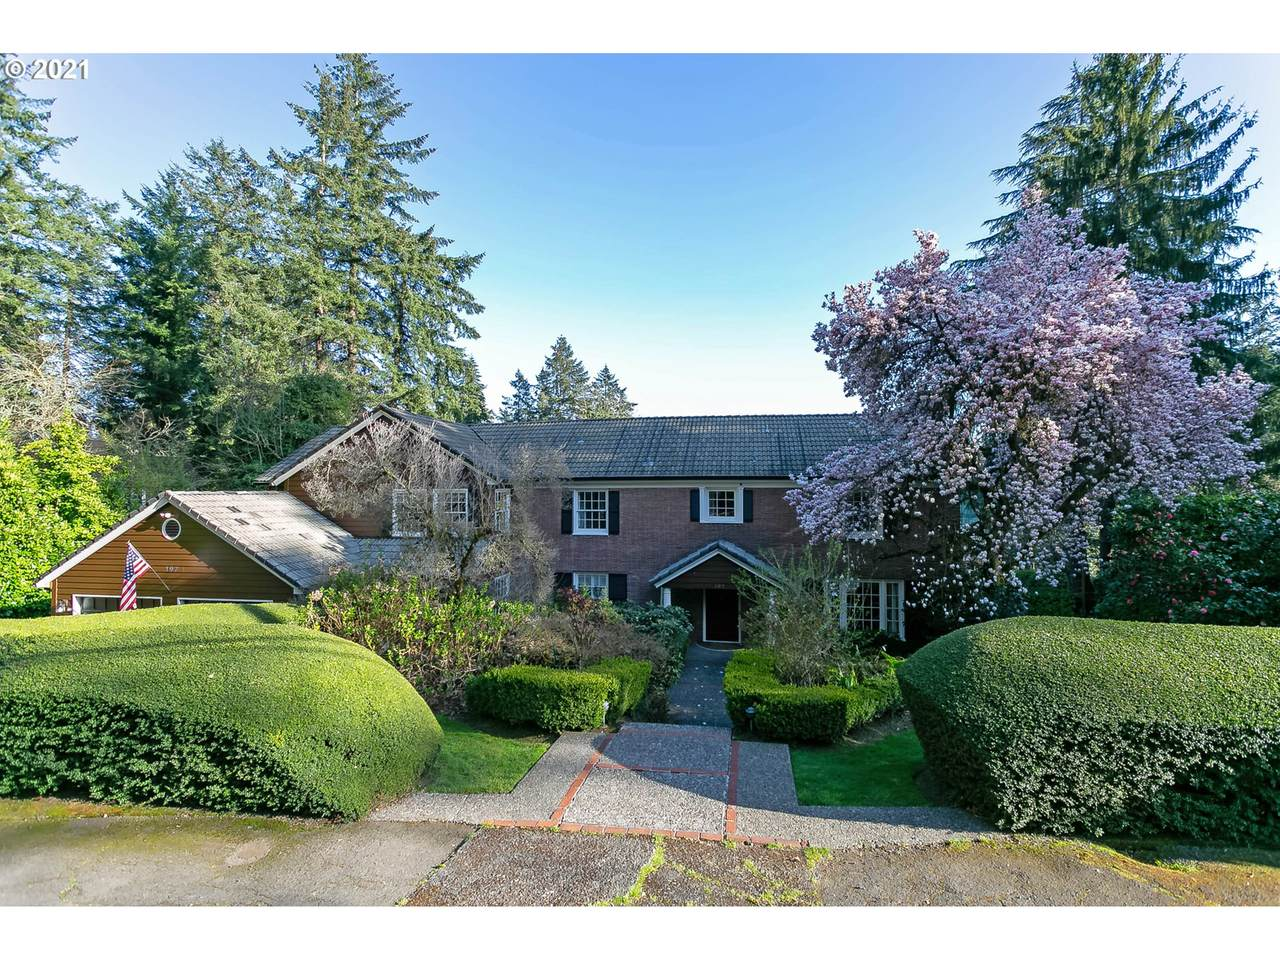 197 Pine Valley Rd - Photo 1